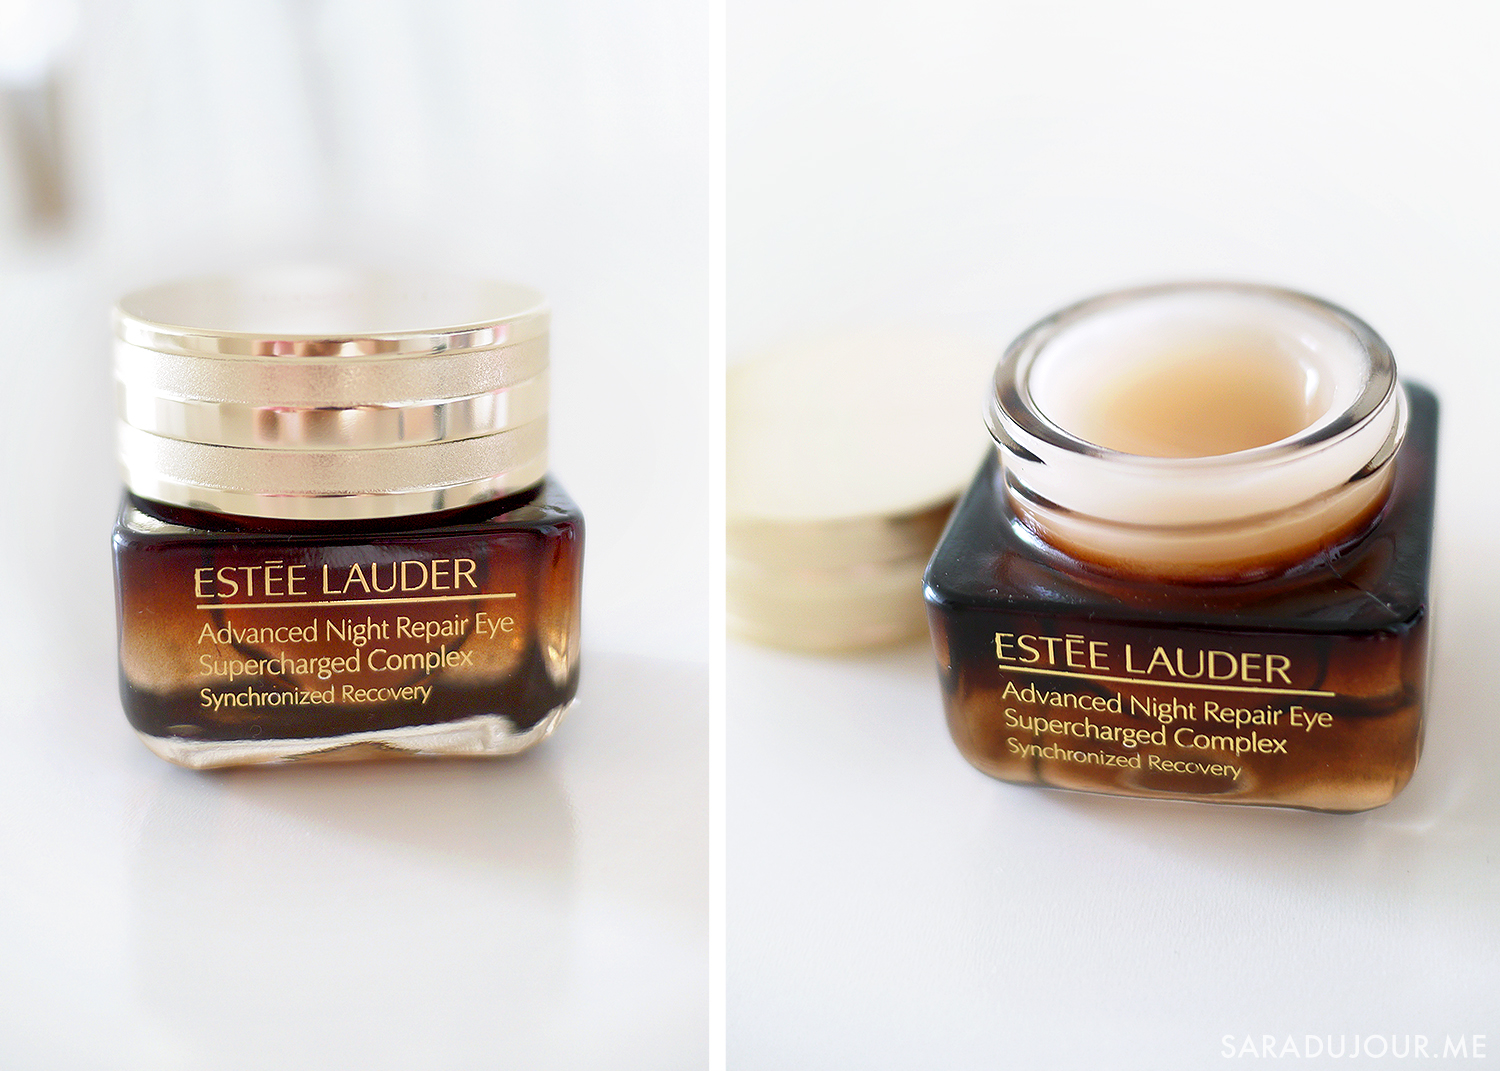 Estee Lauder Advanced Night Repair Eye Cream | Sara du Jour